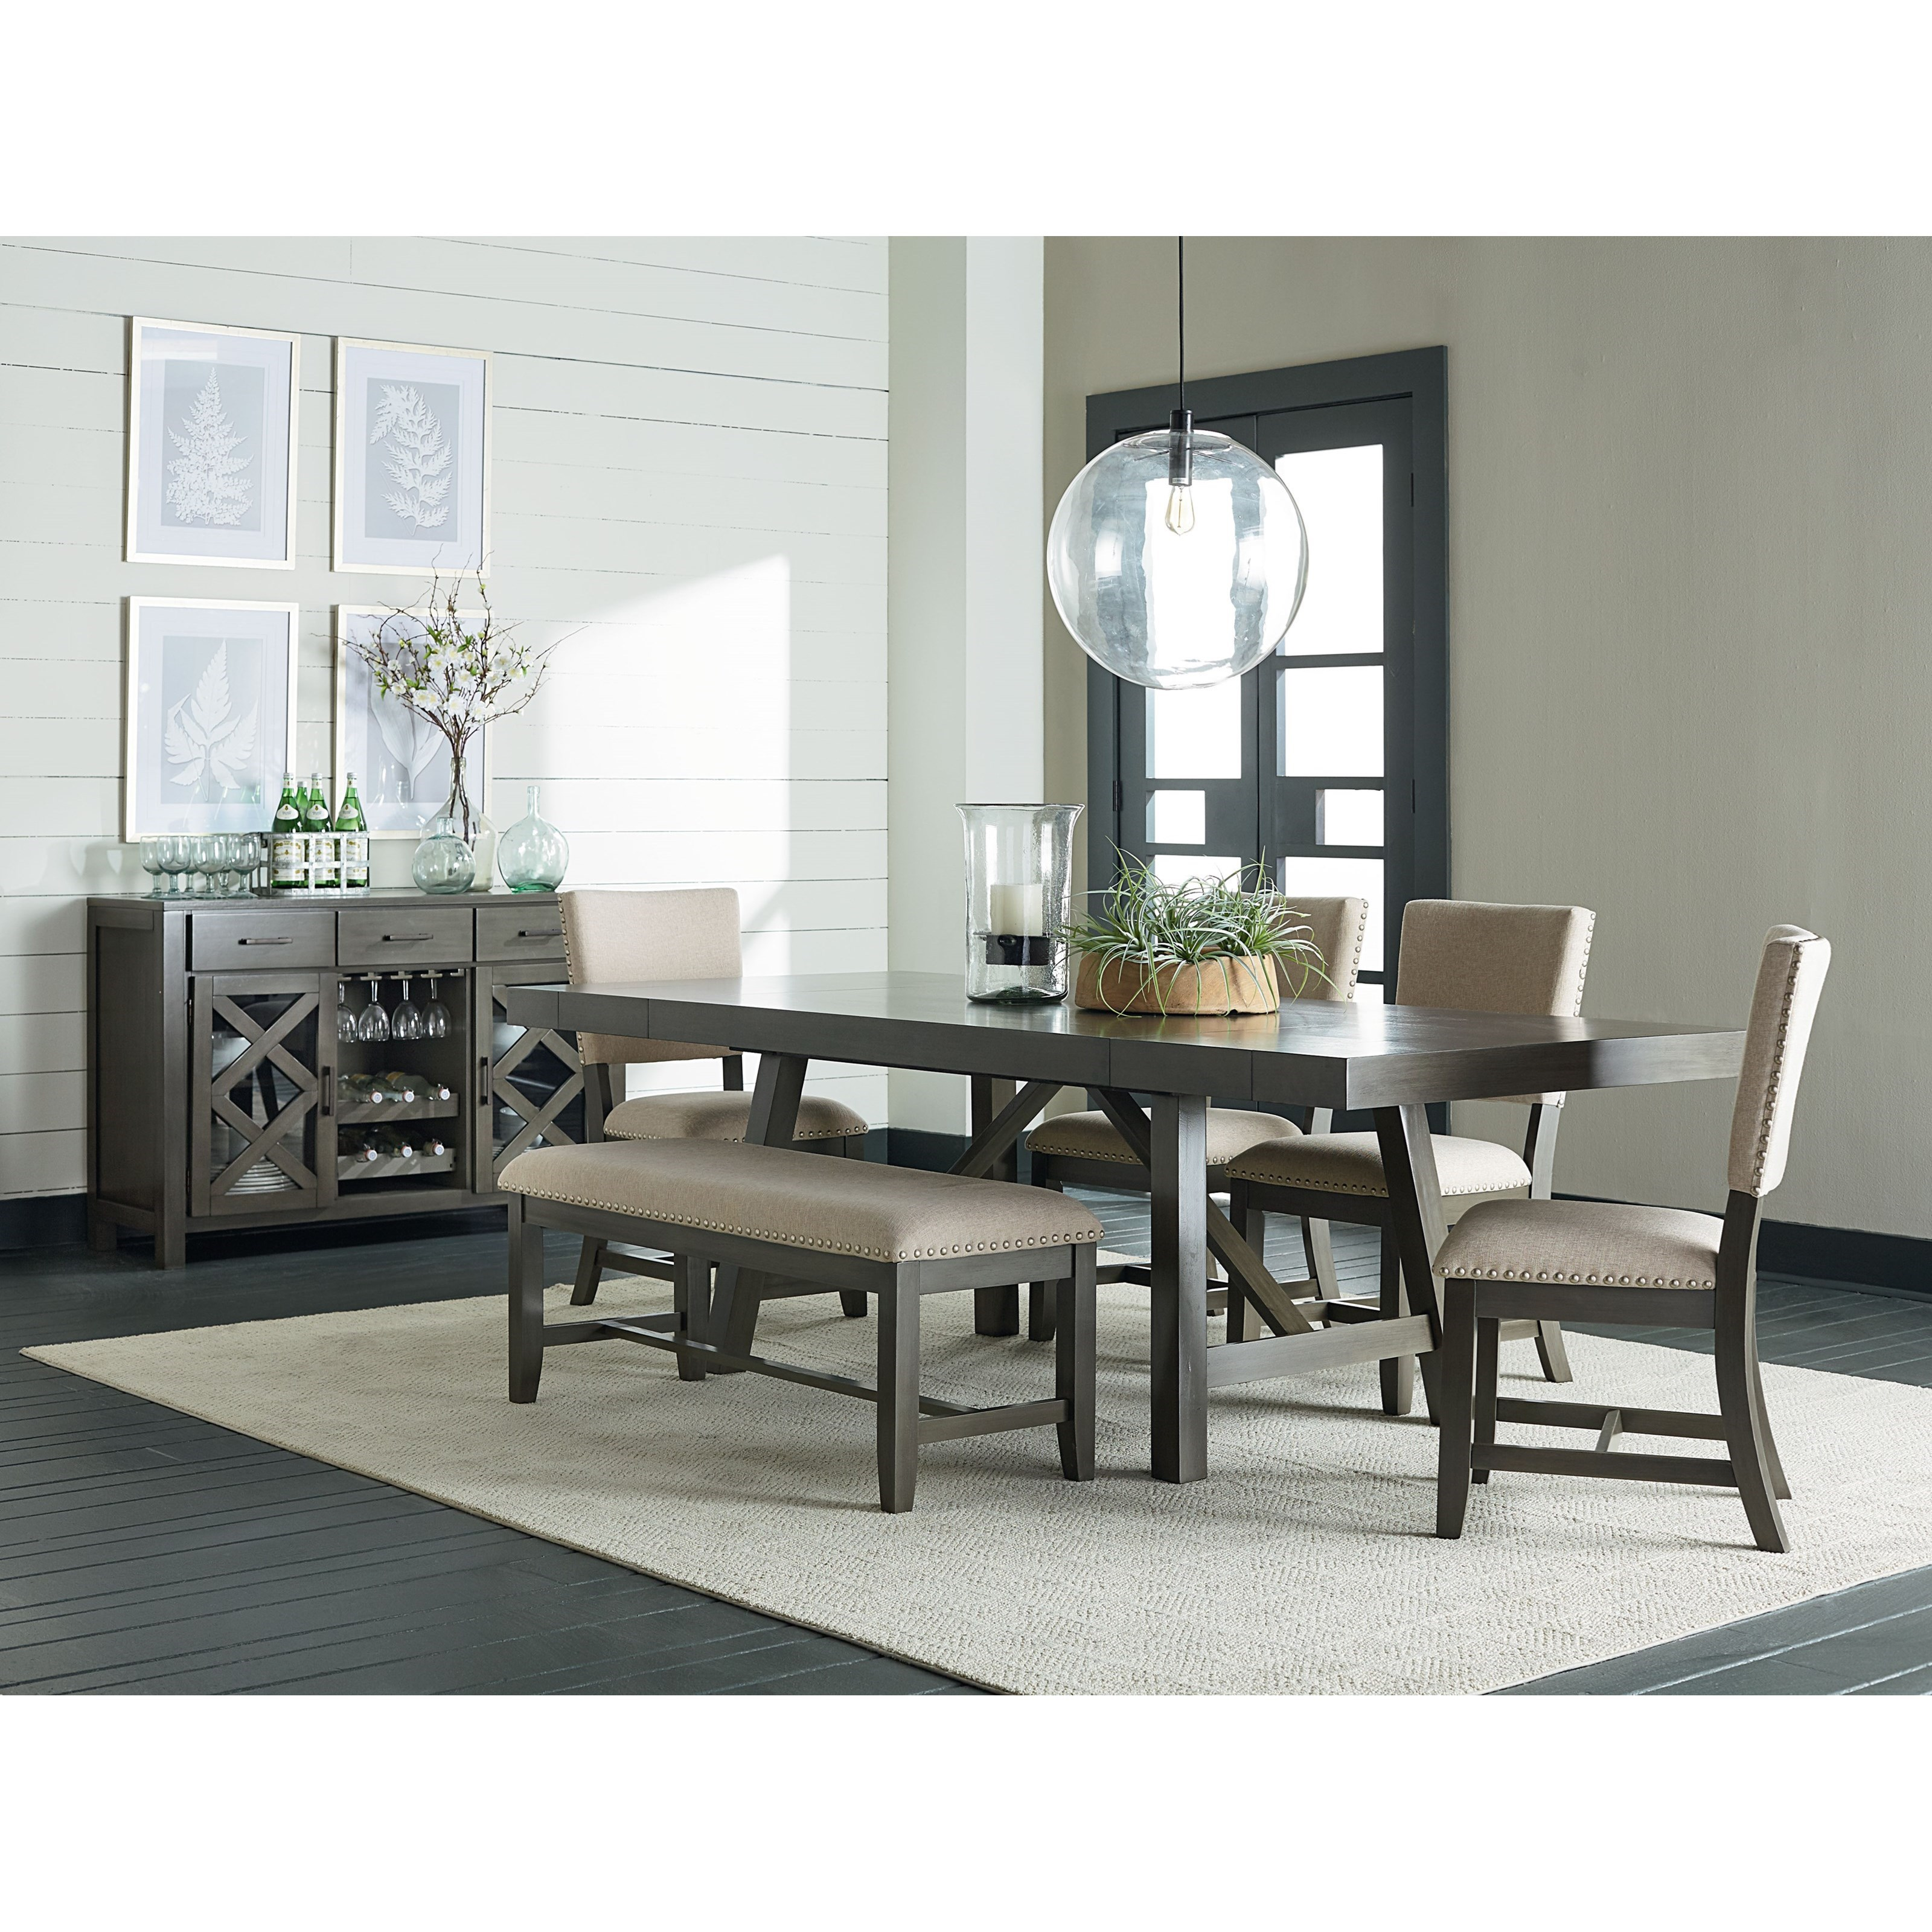 Standard Furniture Omaha Grey Upholstered Side Chair With Wooden Base Jacksonville Furniture